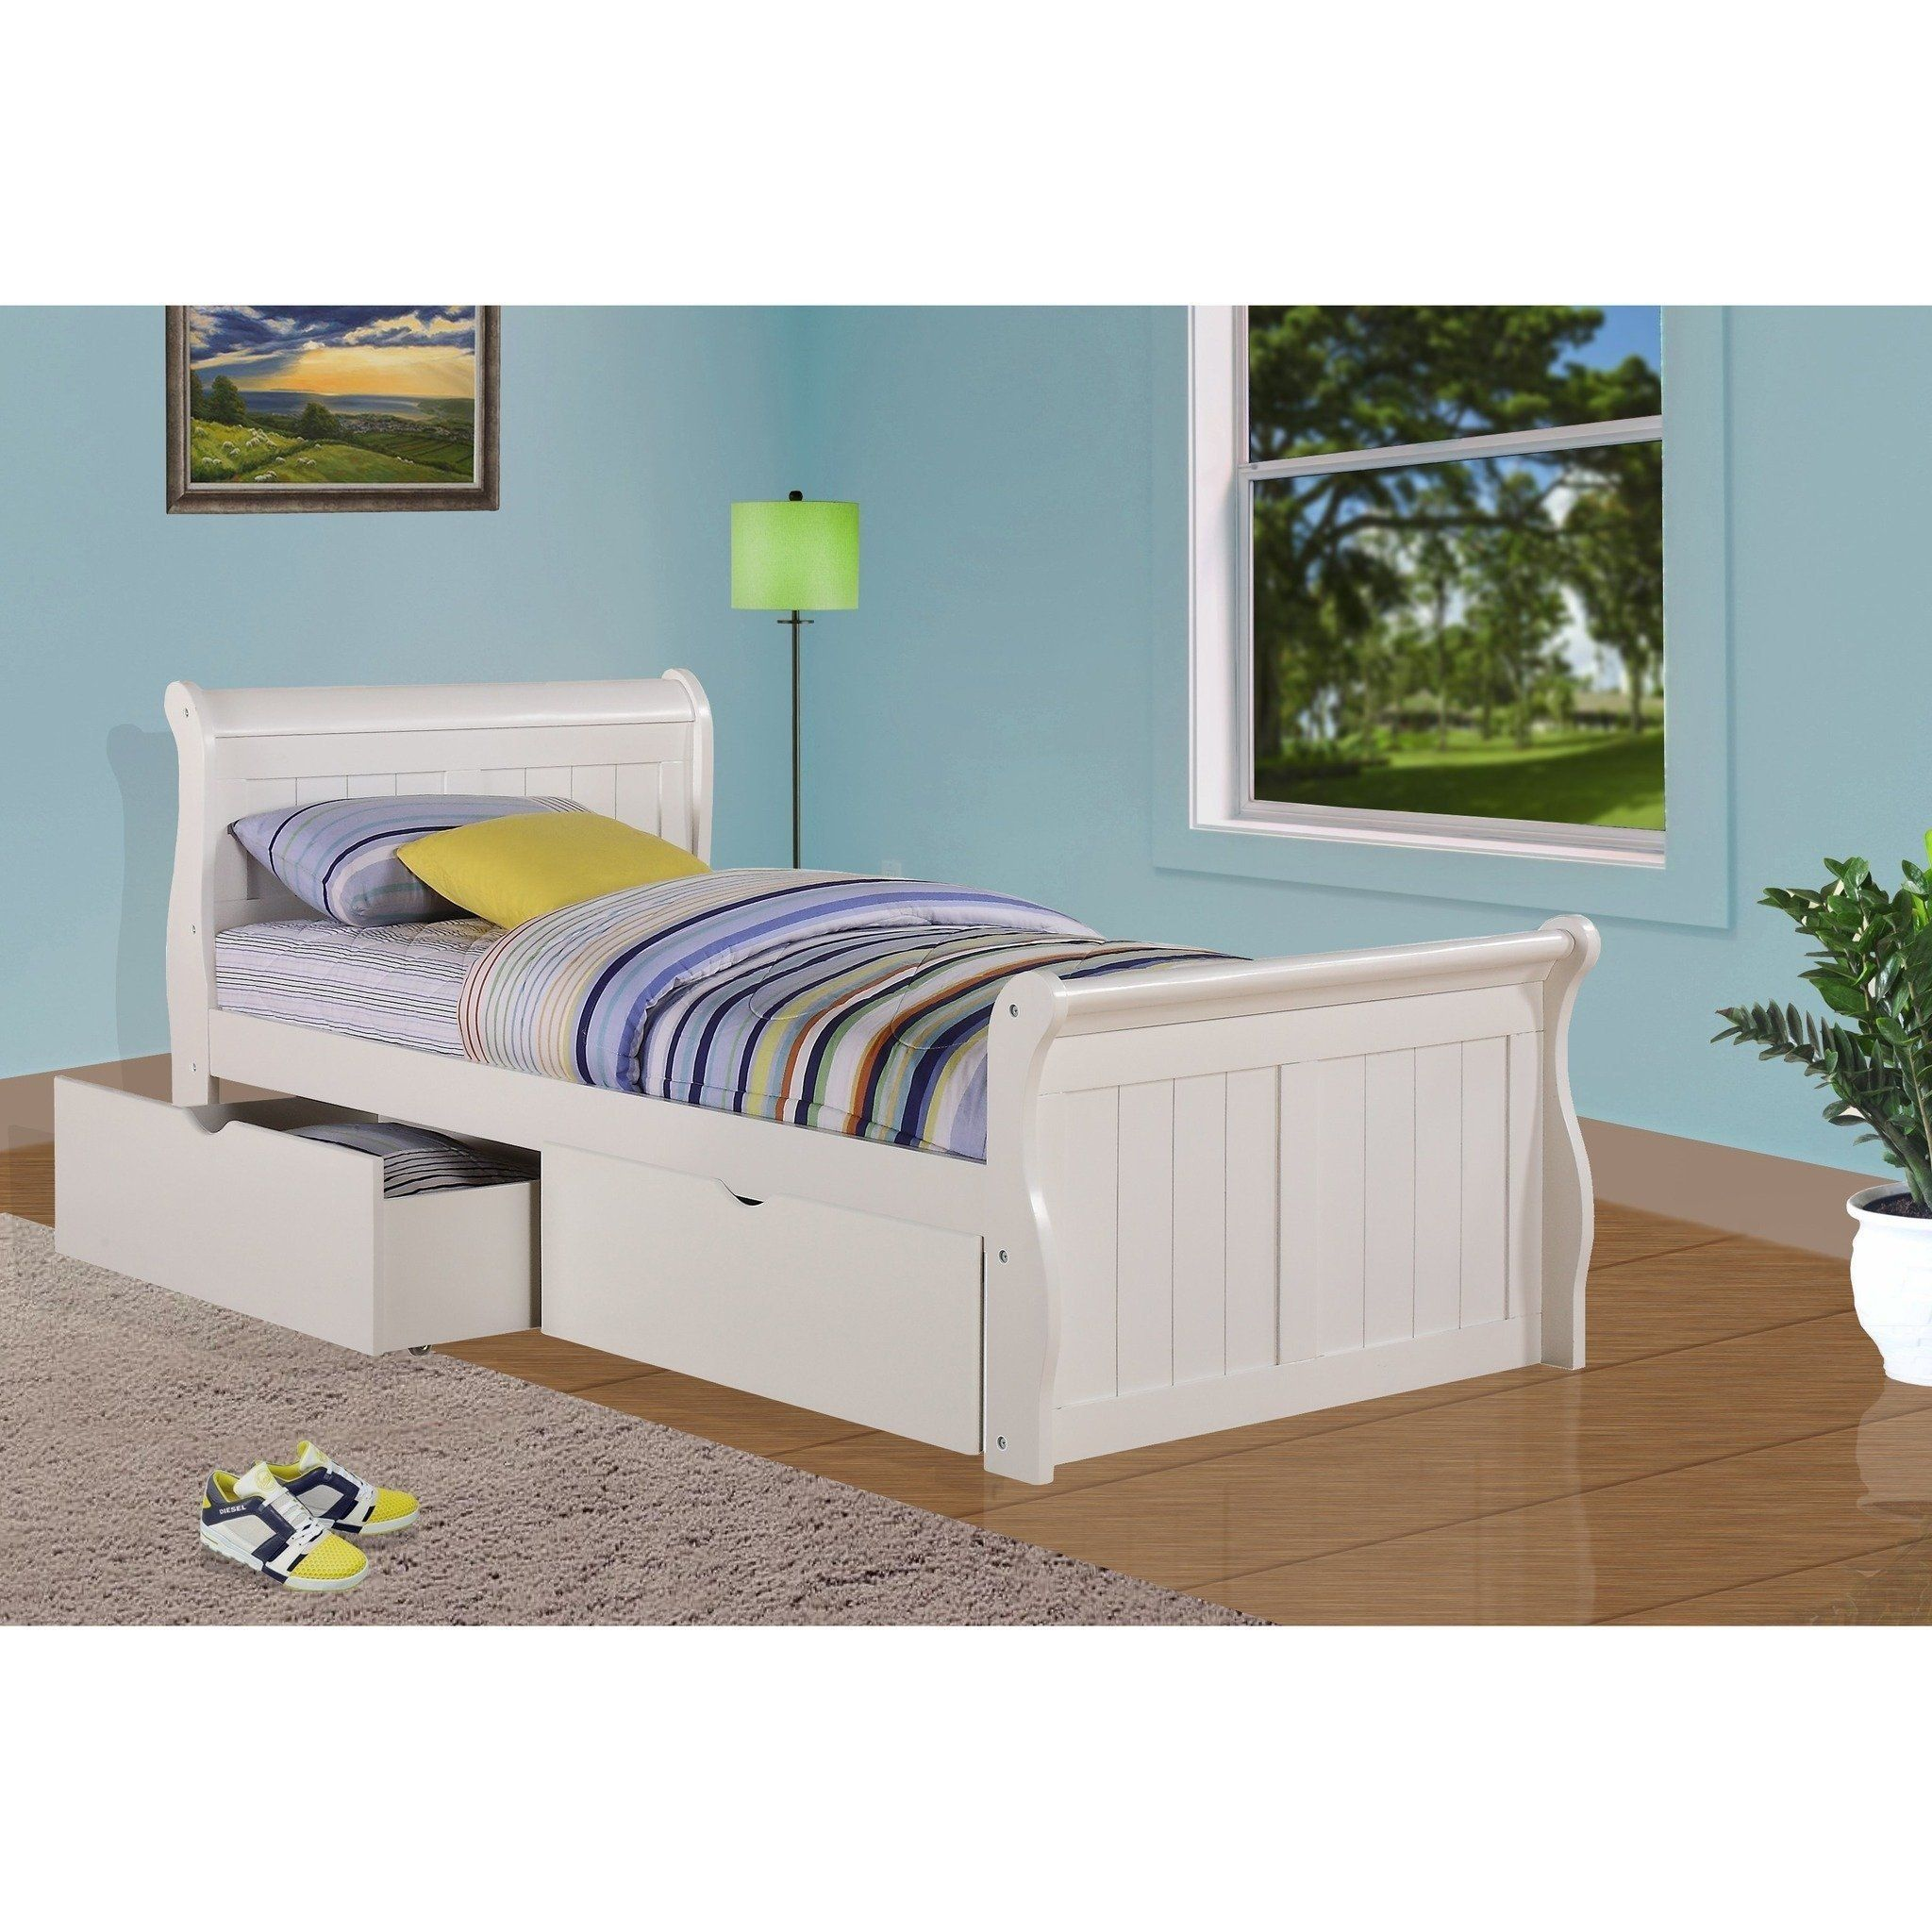 Donco Kids White Pine Wood Twin Sleigh Bed With Trundle Or Storage